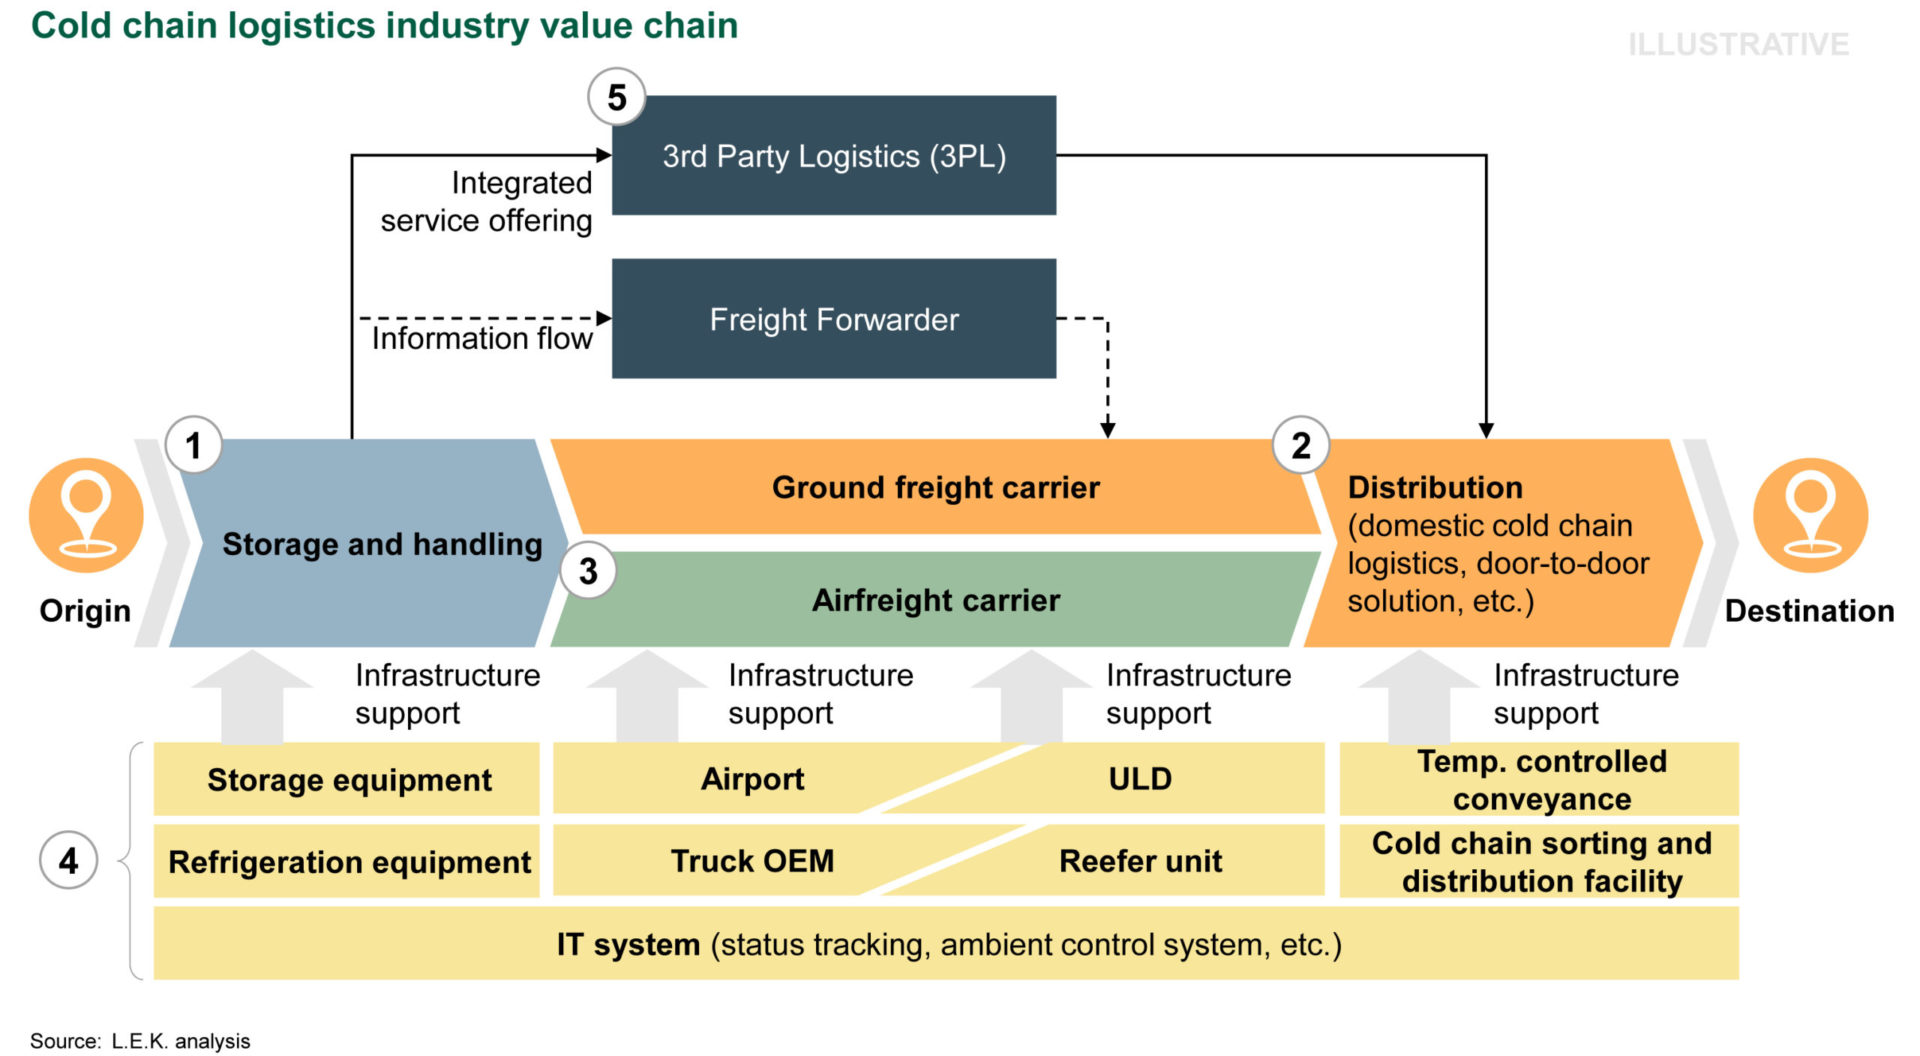 Seizing Opportunities in China's Cold Chain Logistics